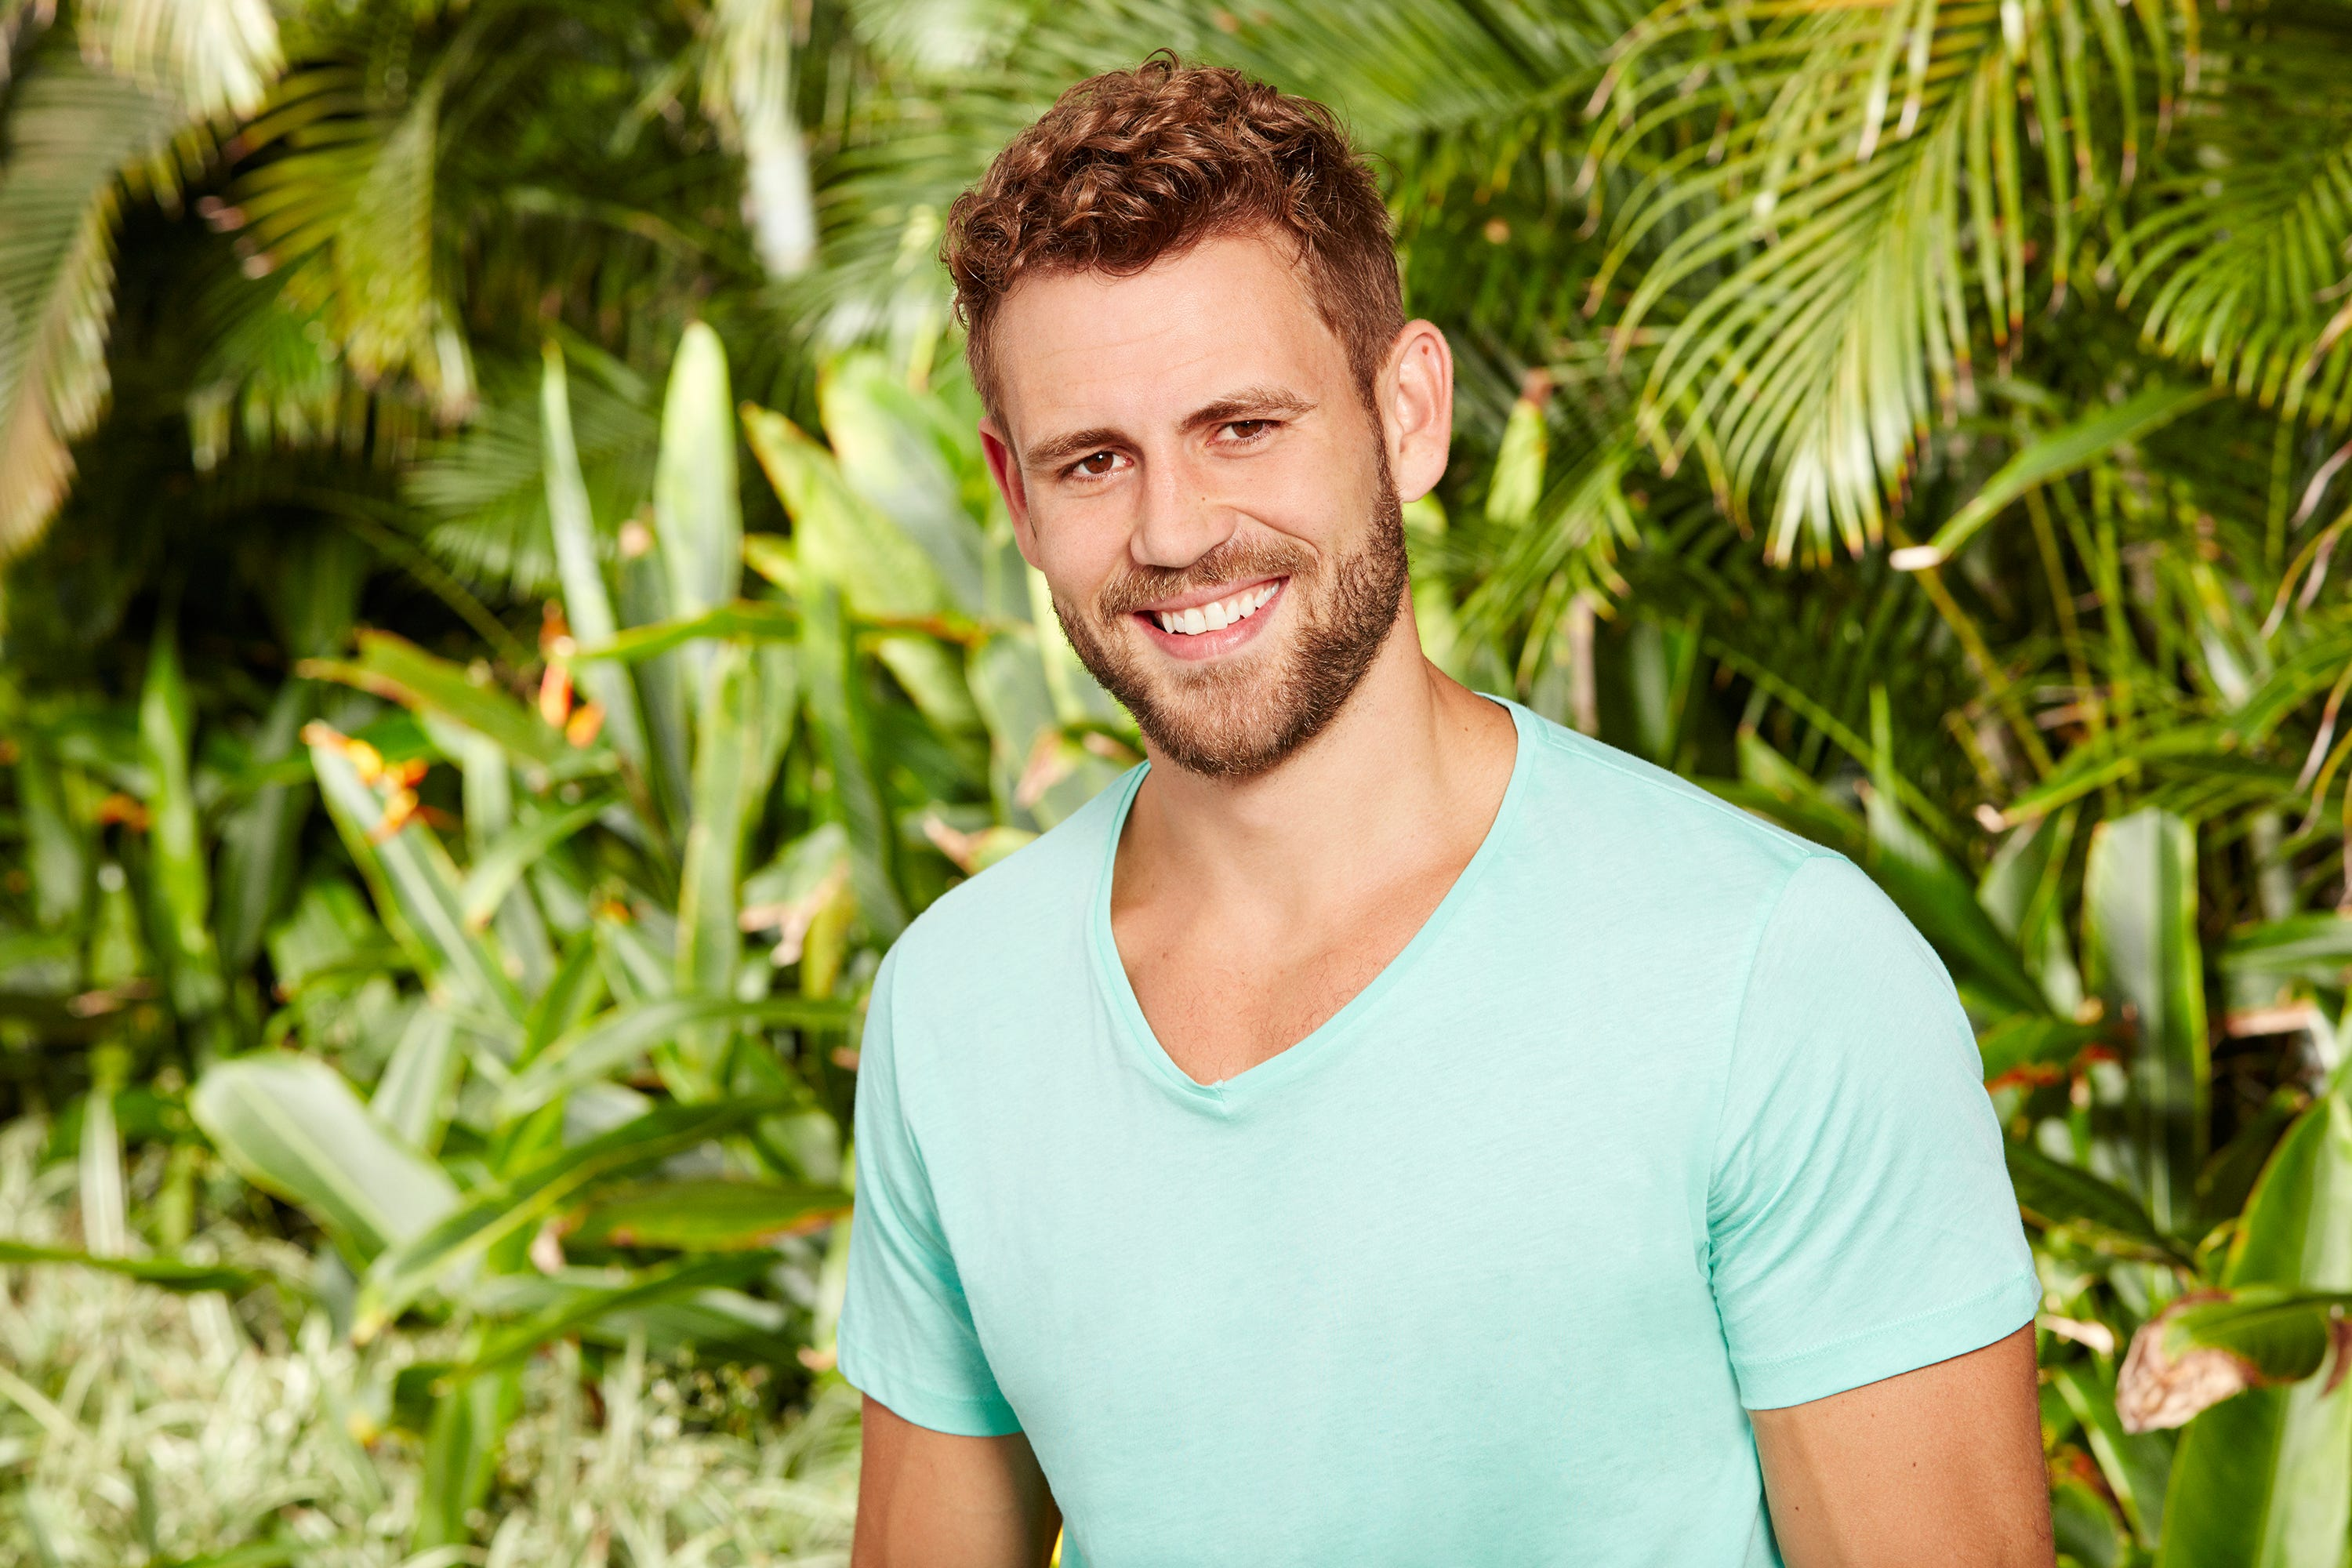 Who Will Be the New Host of 'Bachelor in Paradise'? Some Theories